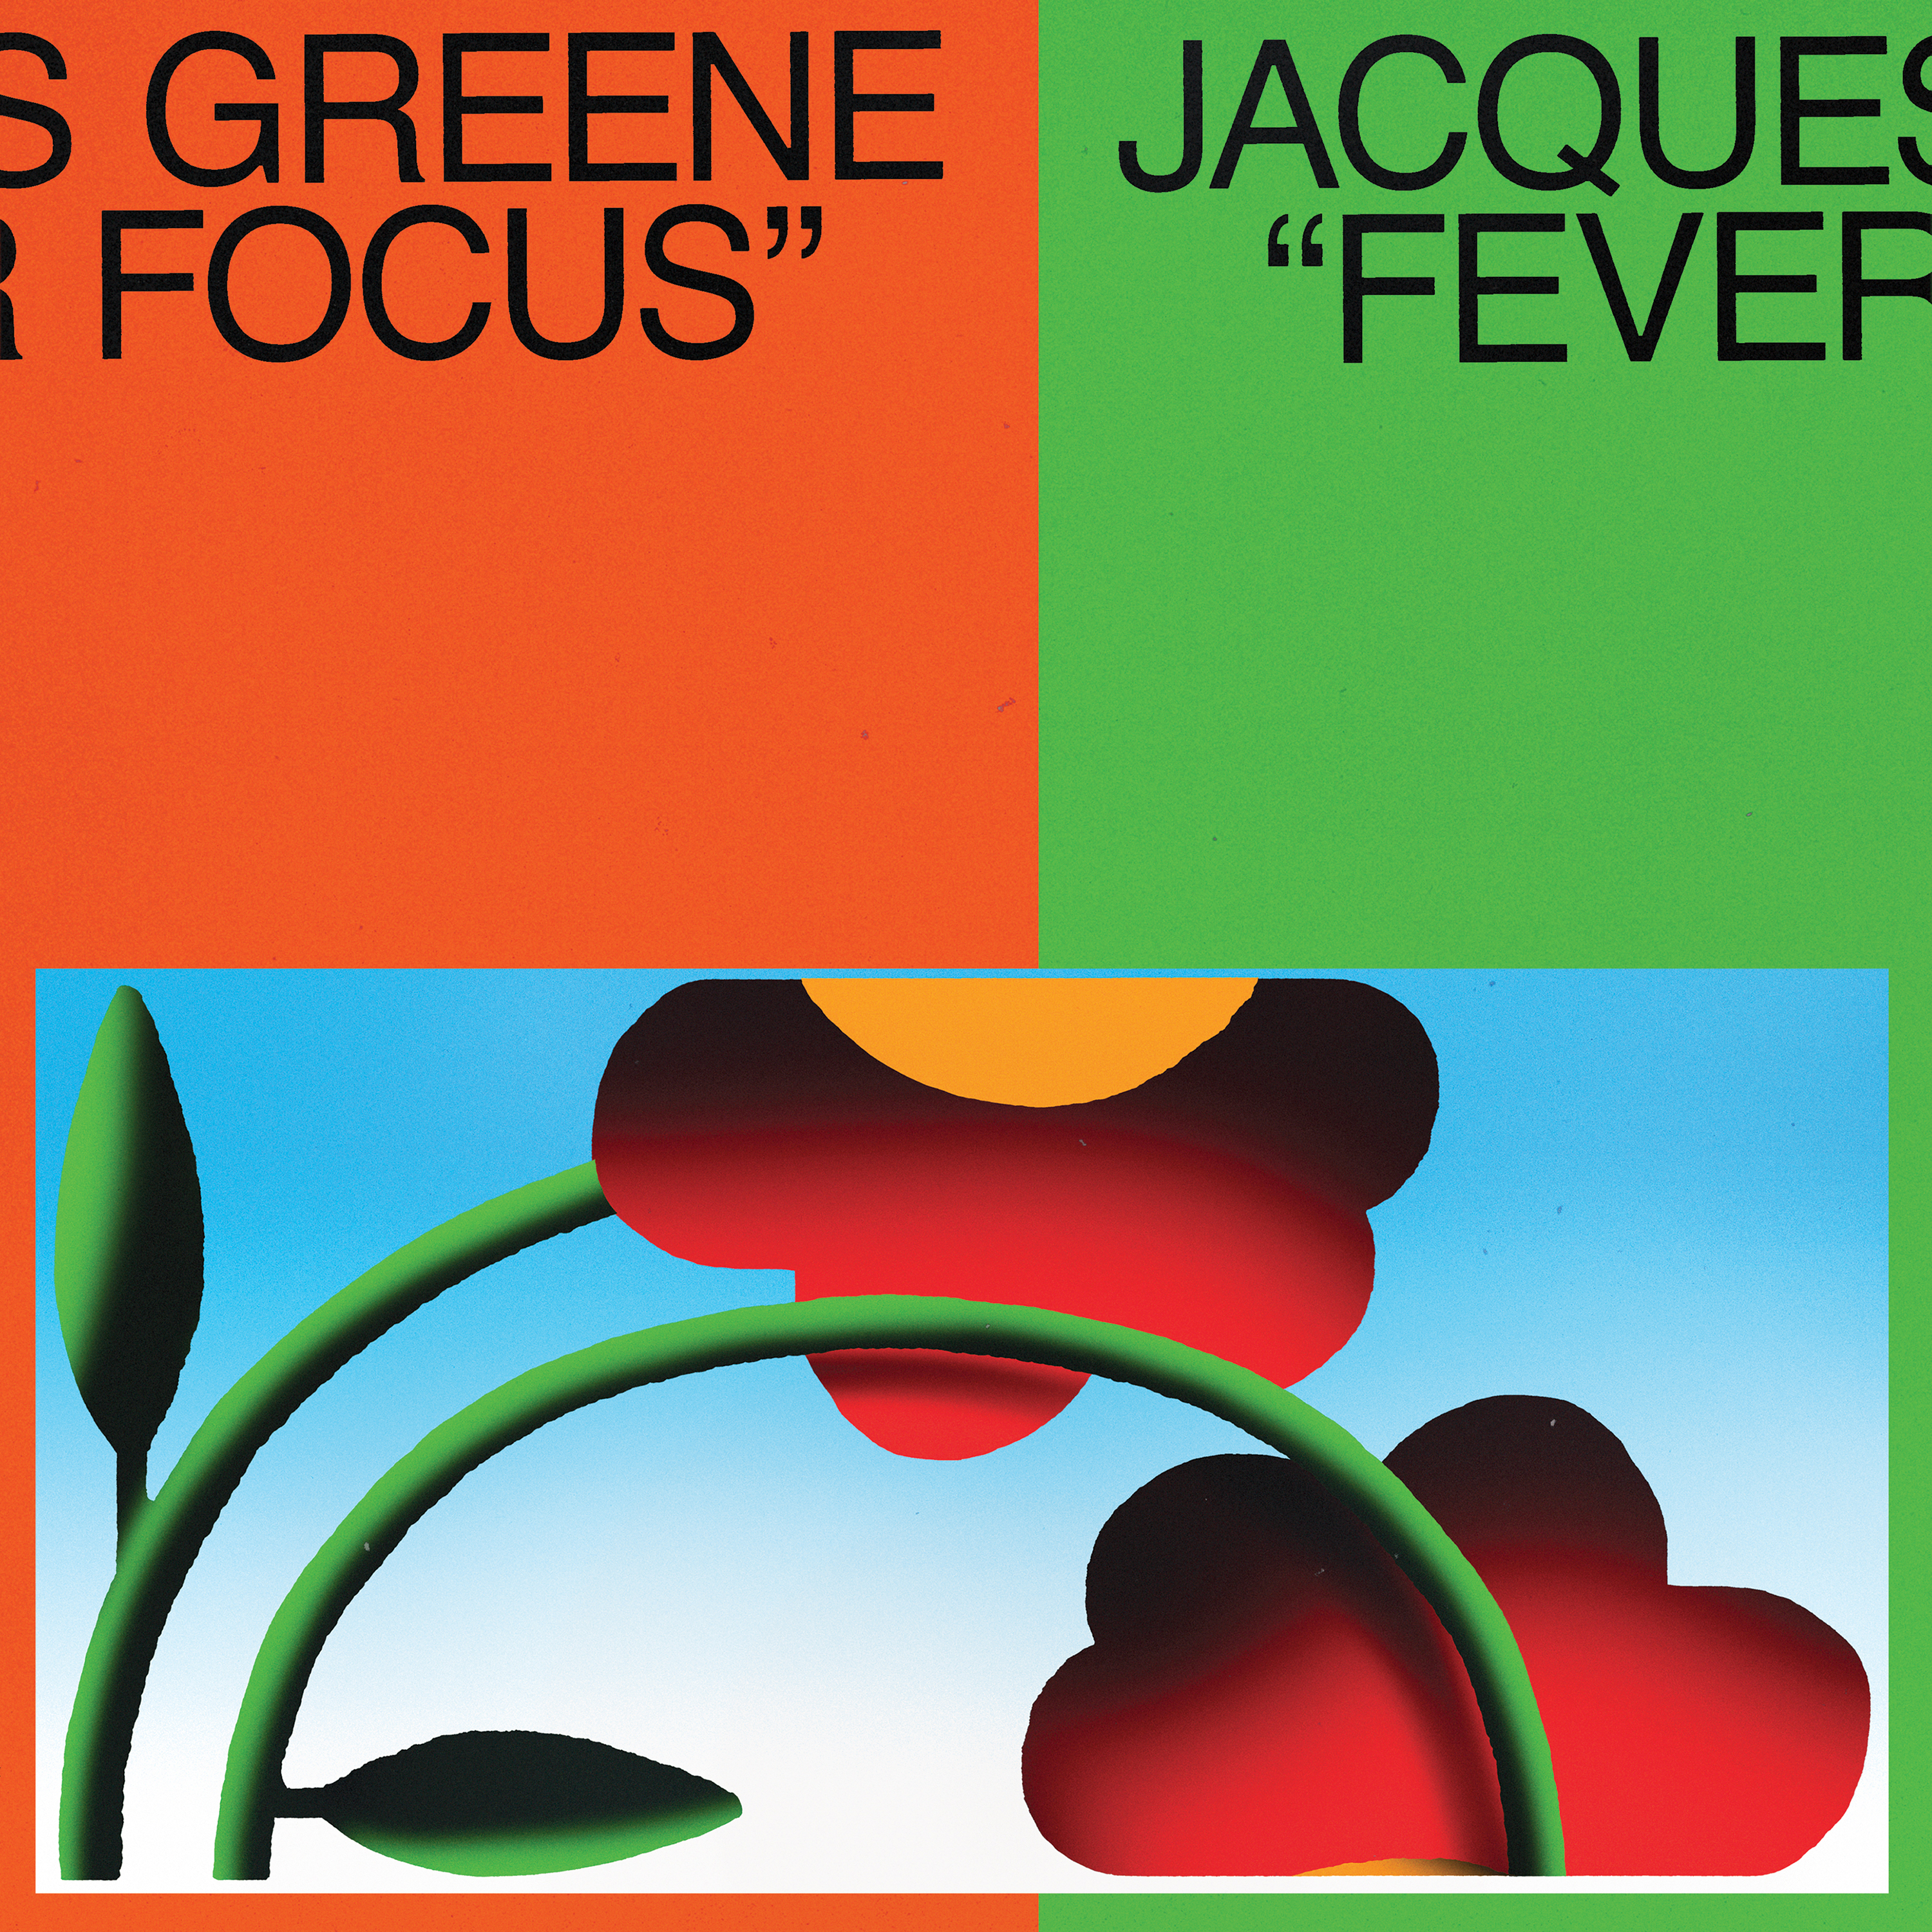 Jacques Greene steps out of the club on Fever Focus EP